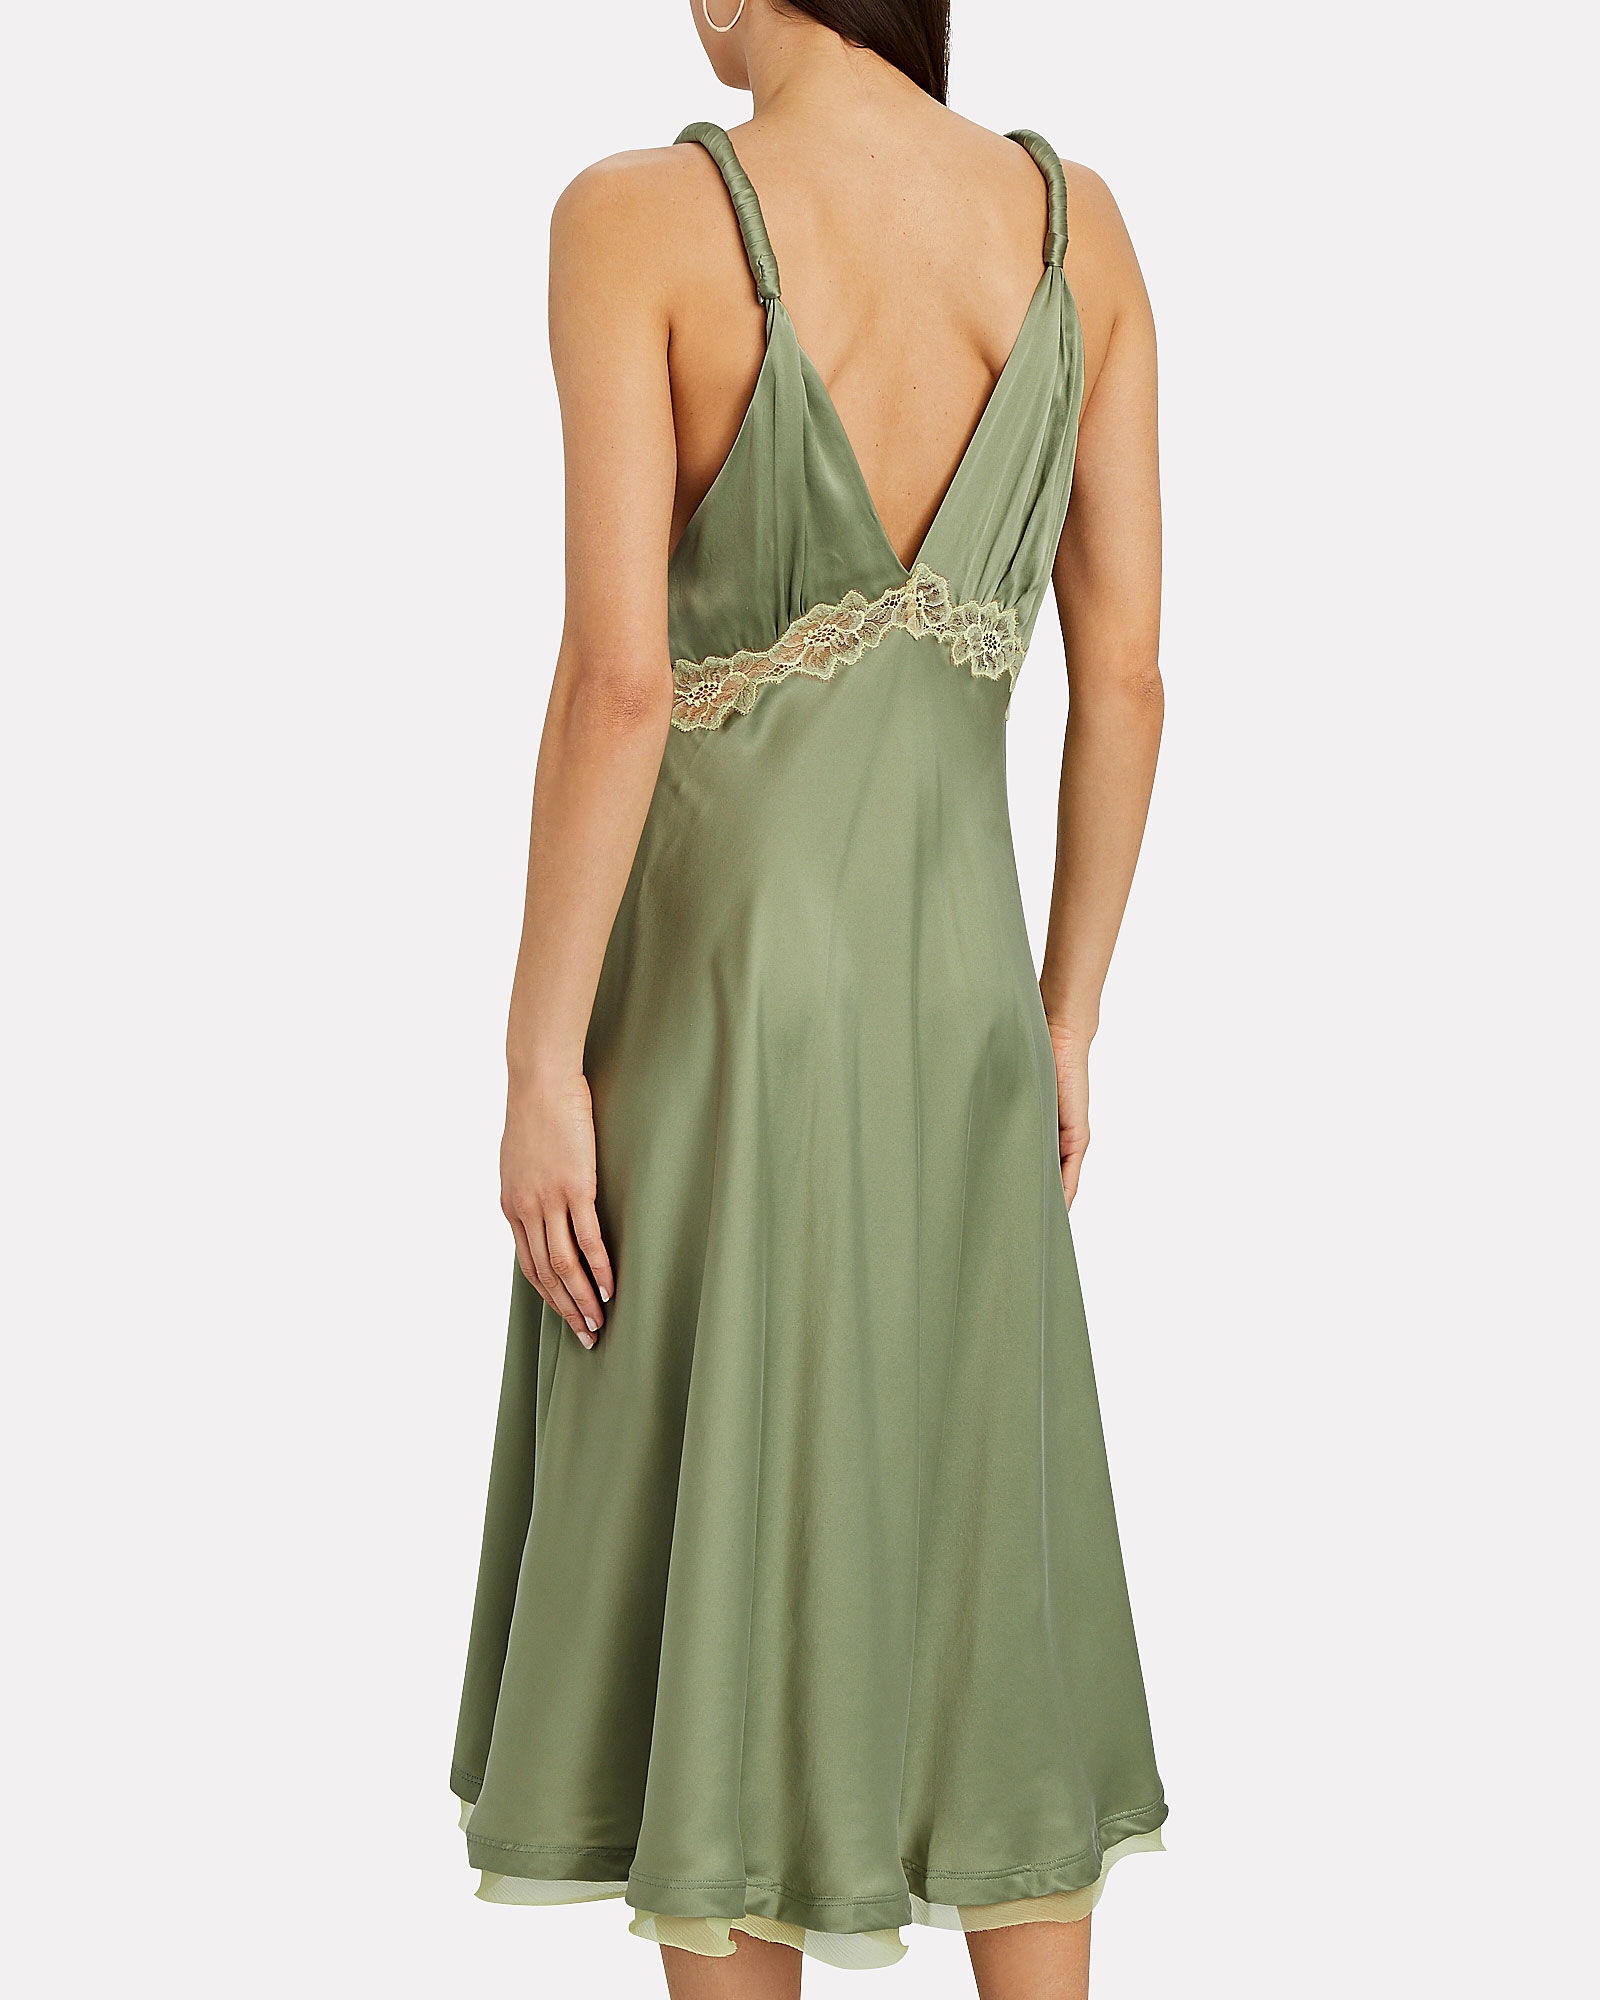 Kendra Lace-Trimmed Silk Dress, GREEN, hi-res